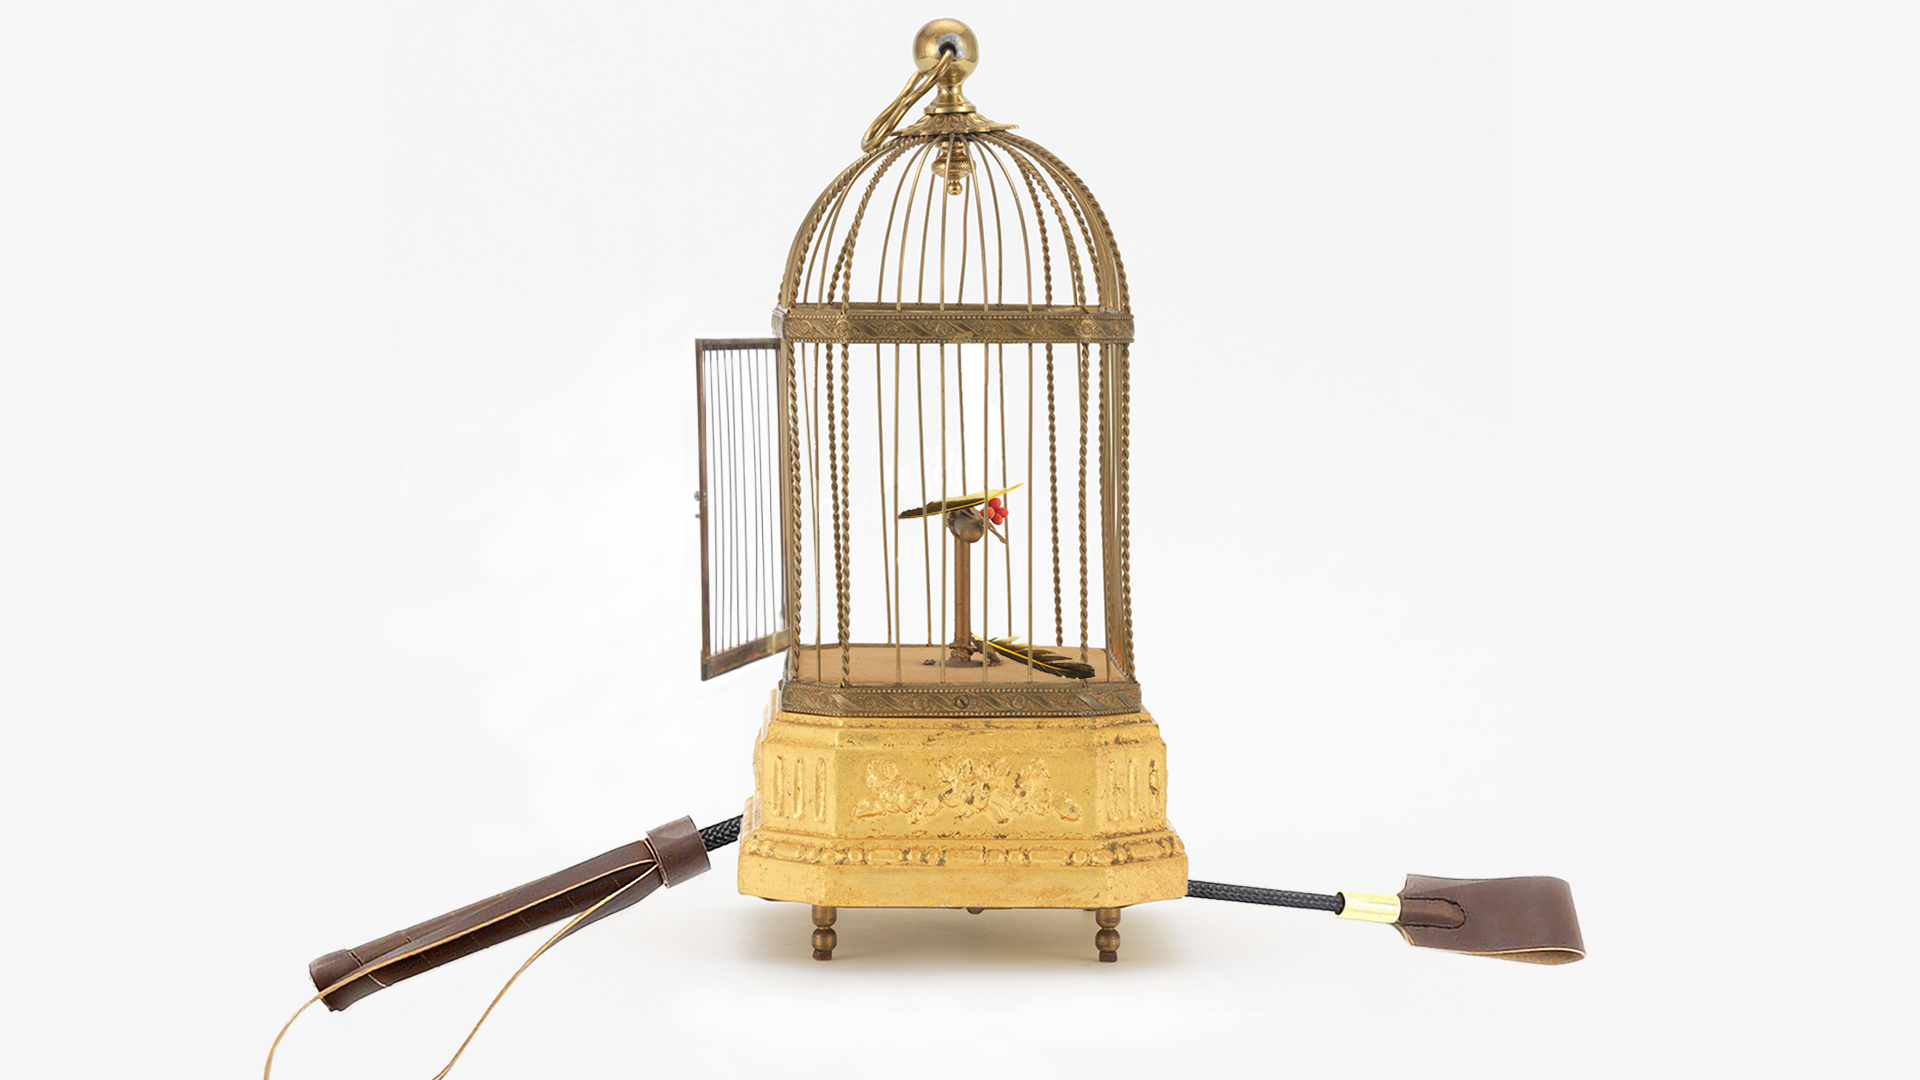 An open bird cage containing two feathers, and a broken riding crop laying next to it